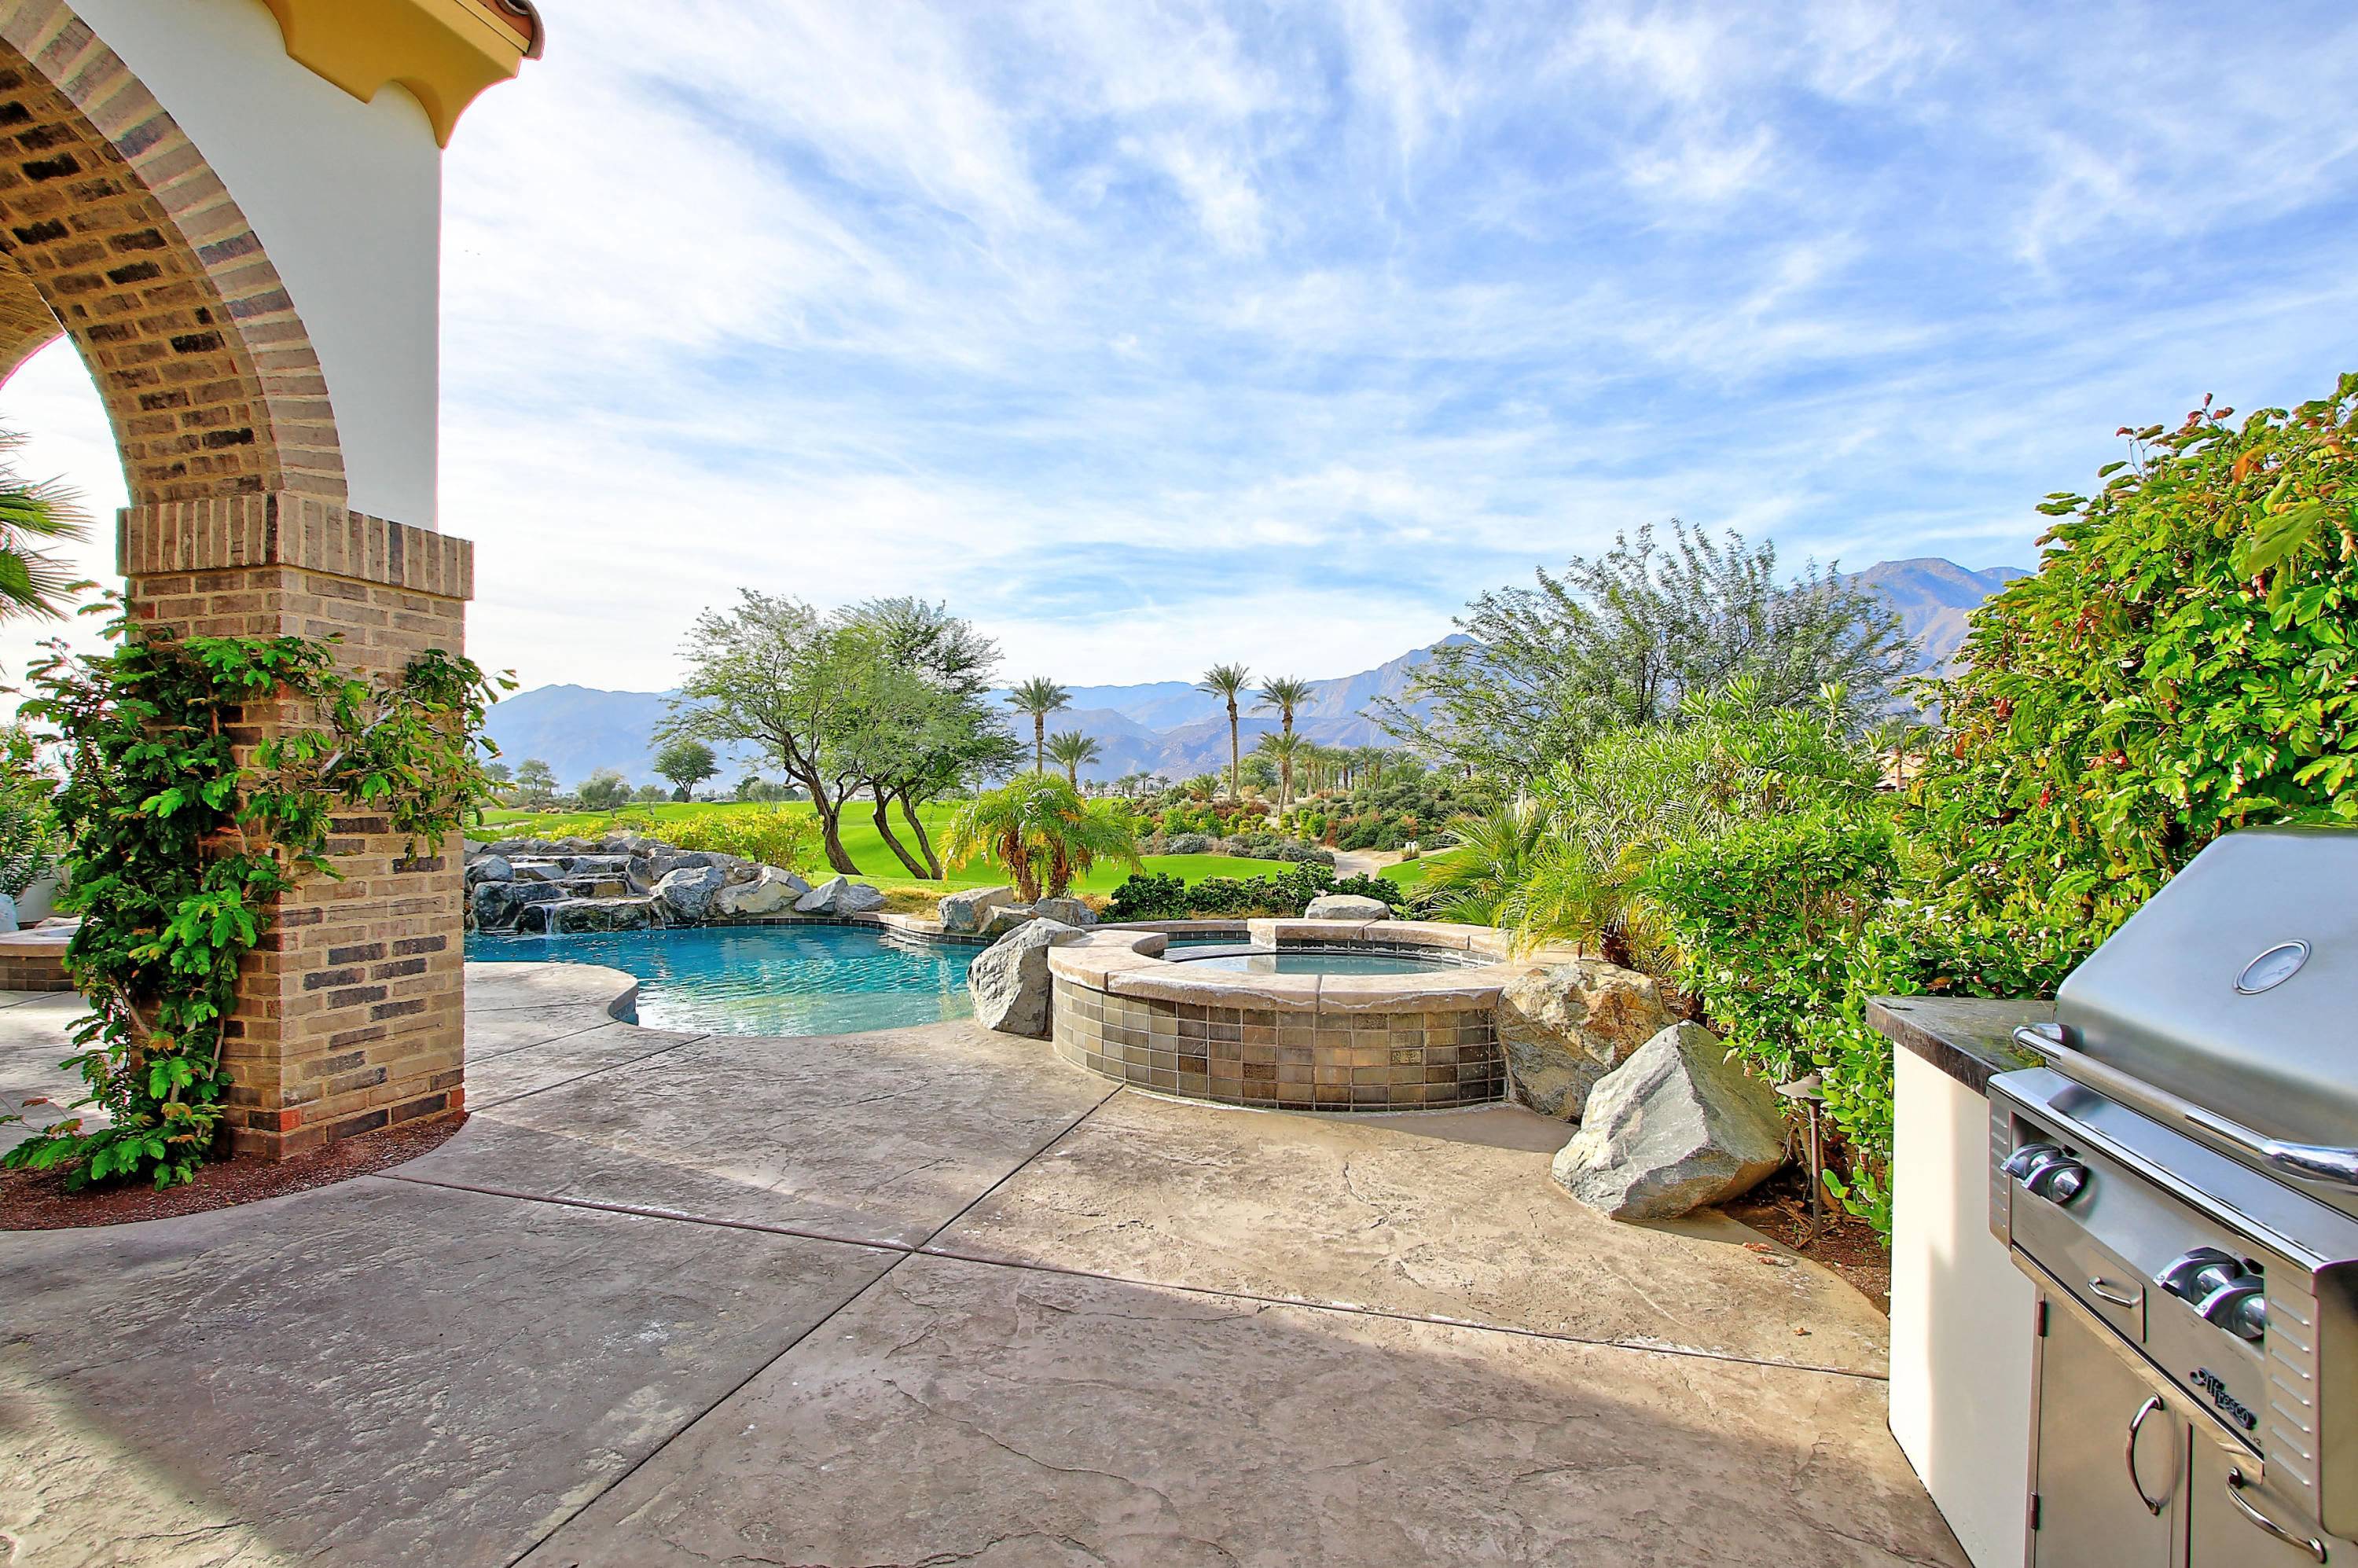 81647 Andalusia, La Quinta, California 92253, 4 Bedrooms Bedrooms, ,5 BathroomsBathrooms,Residential,For Sale,81647 Andalusia,219035406